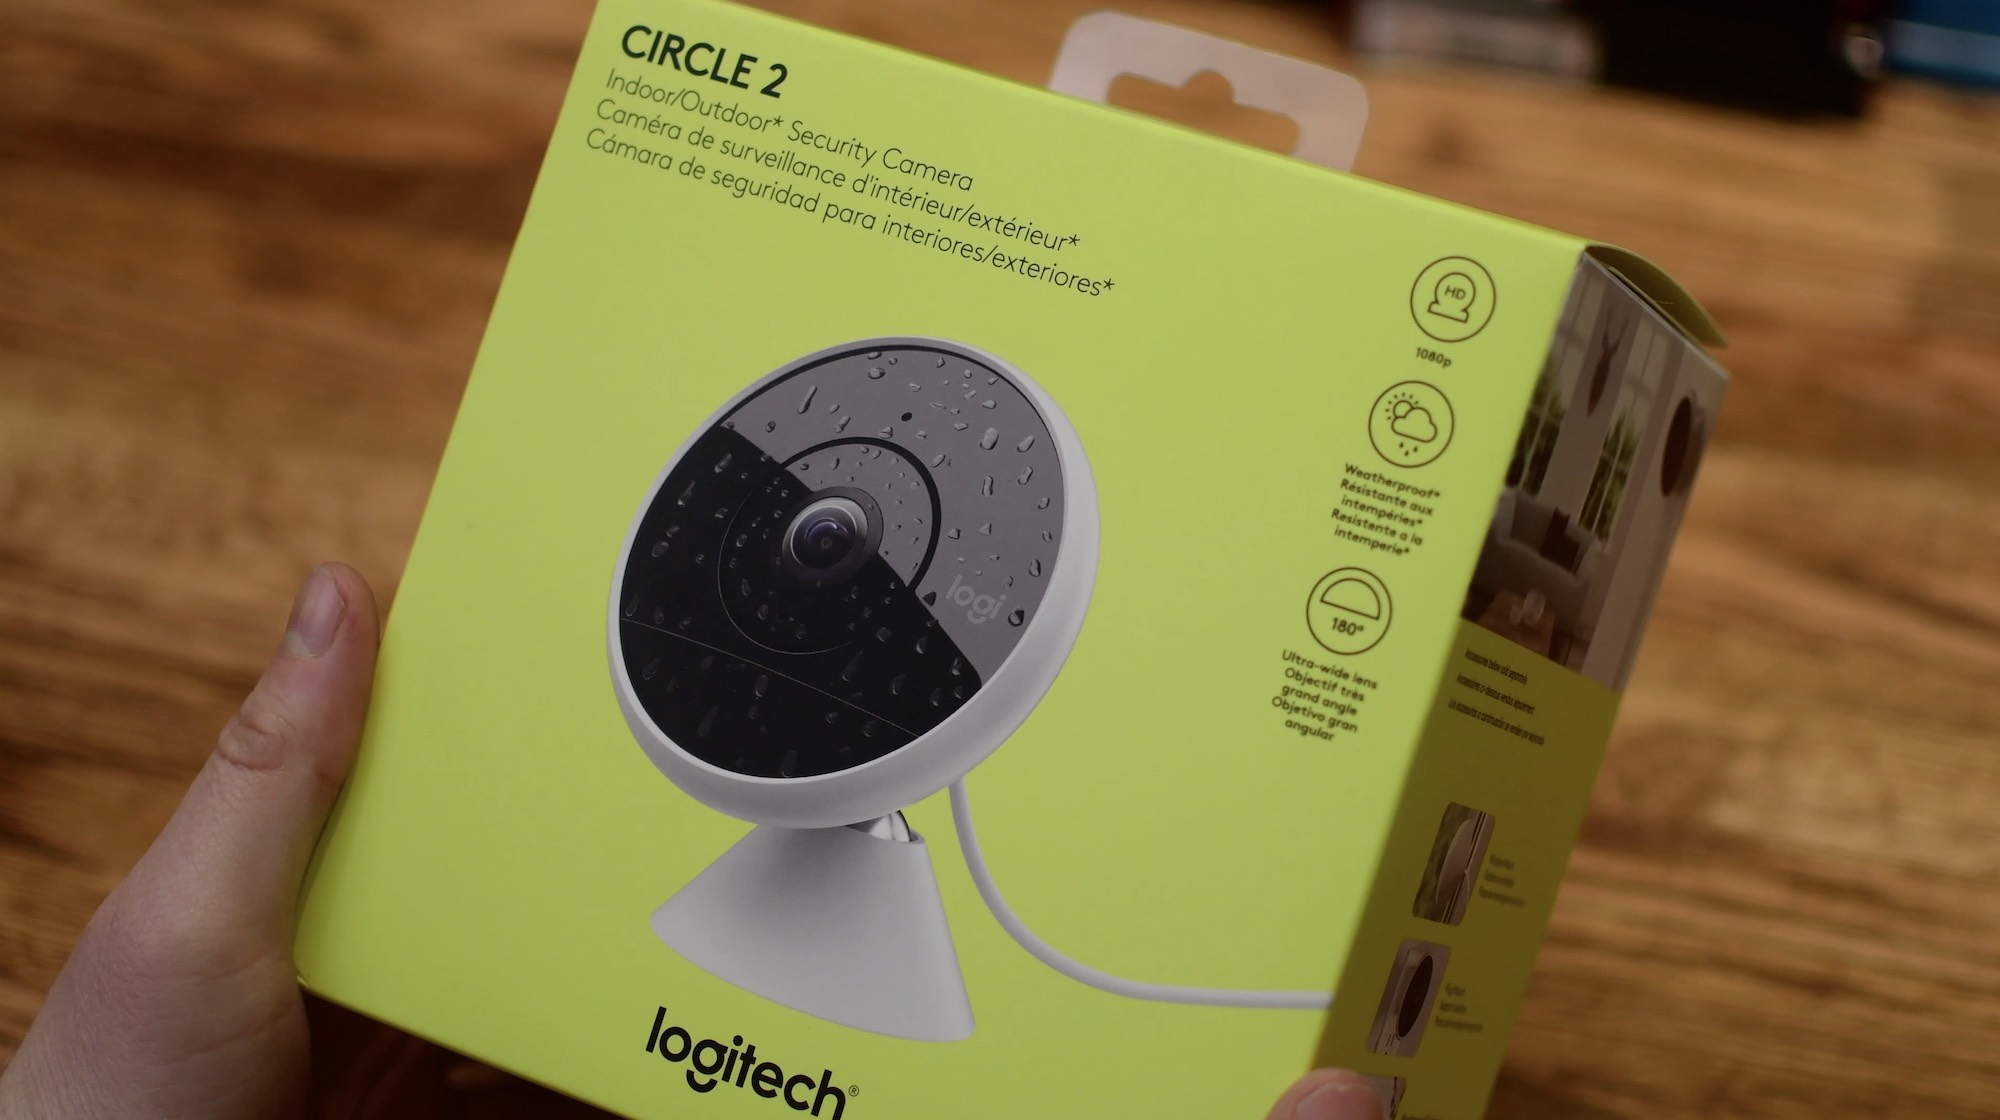 Camera Exterieur New Deal The Logitech Circle 2 Home Security Camera Is The Best Homekit Cam